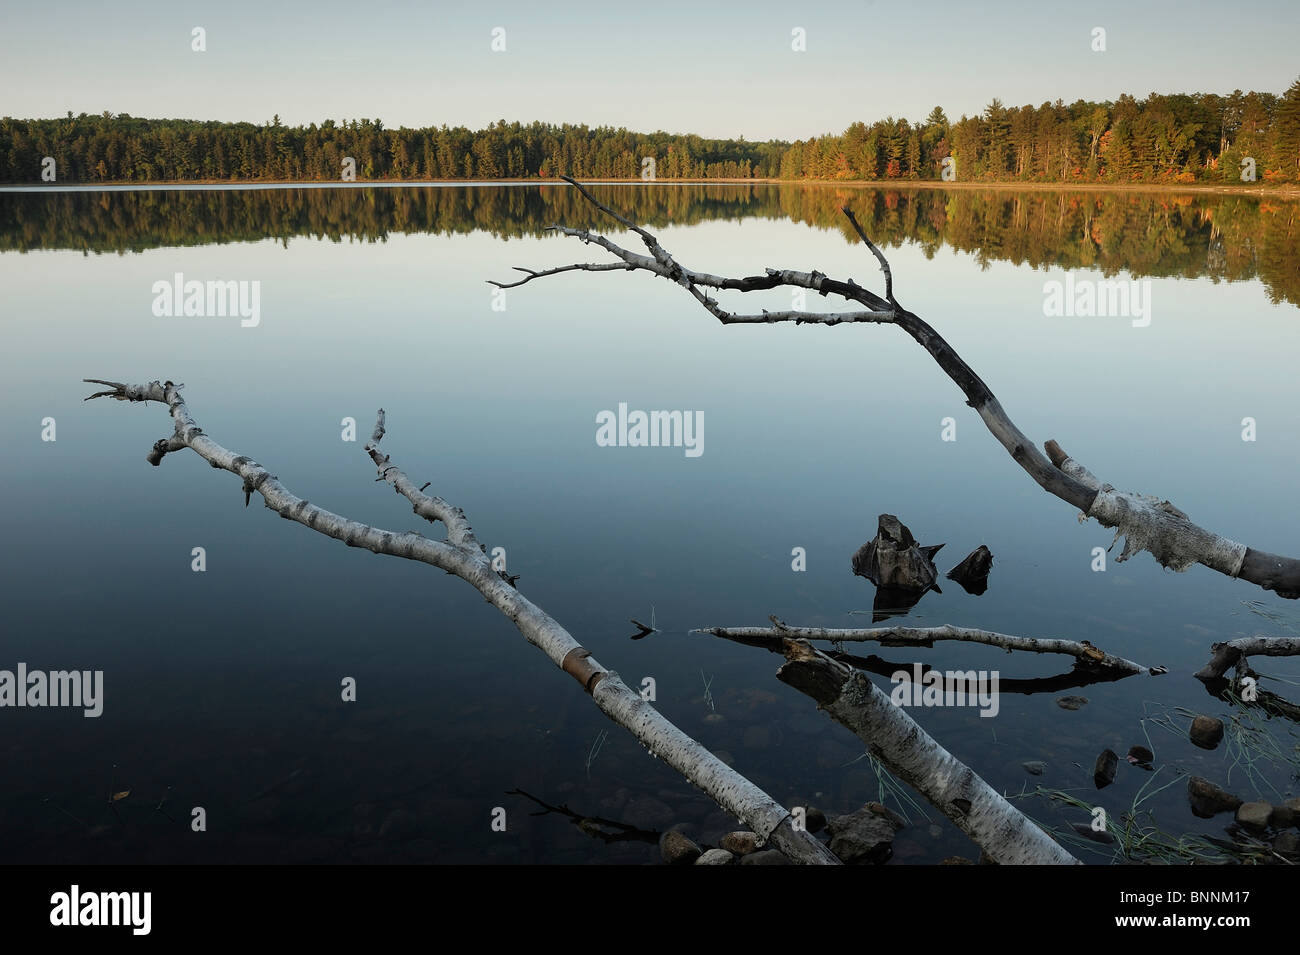 Starrett Lake Northern Highland American Legion State Forest Wisconsin USA America United States of America lake - Stock Image